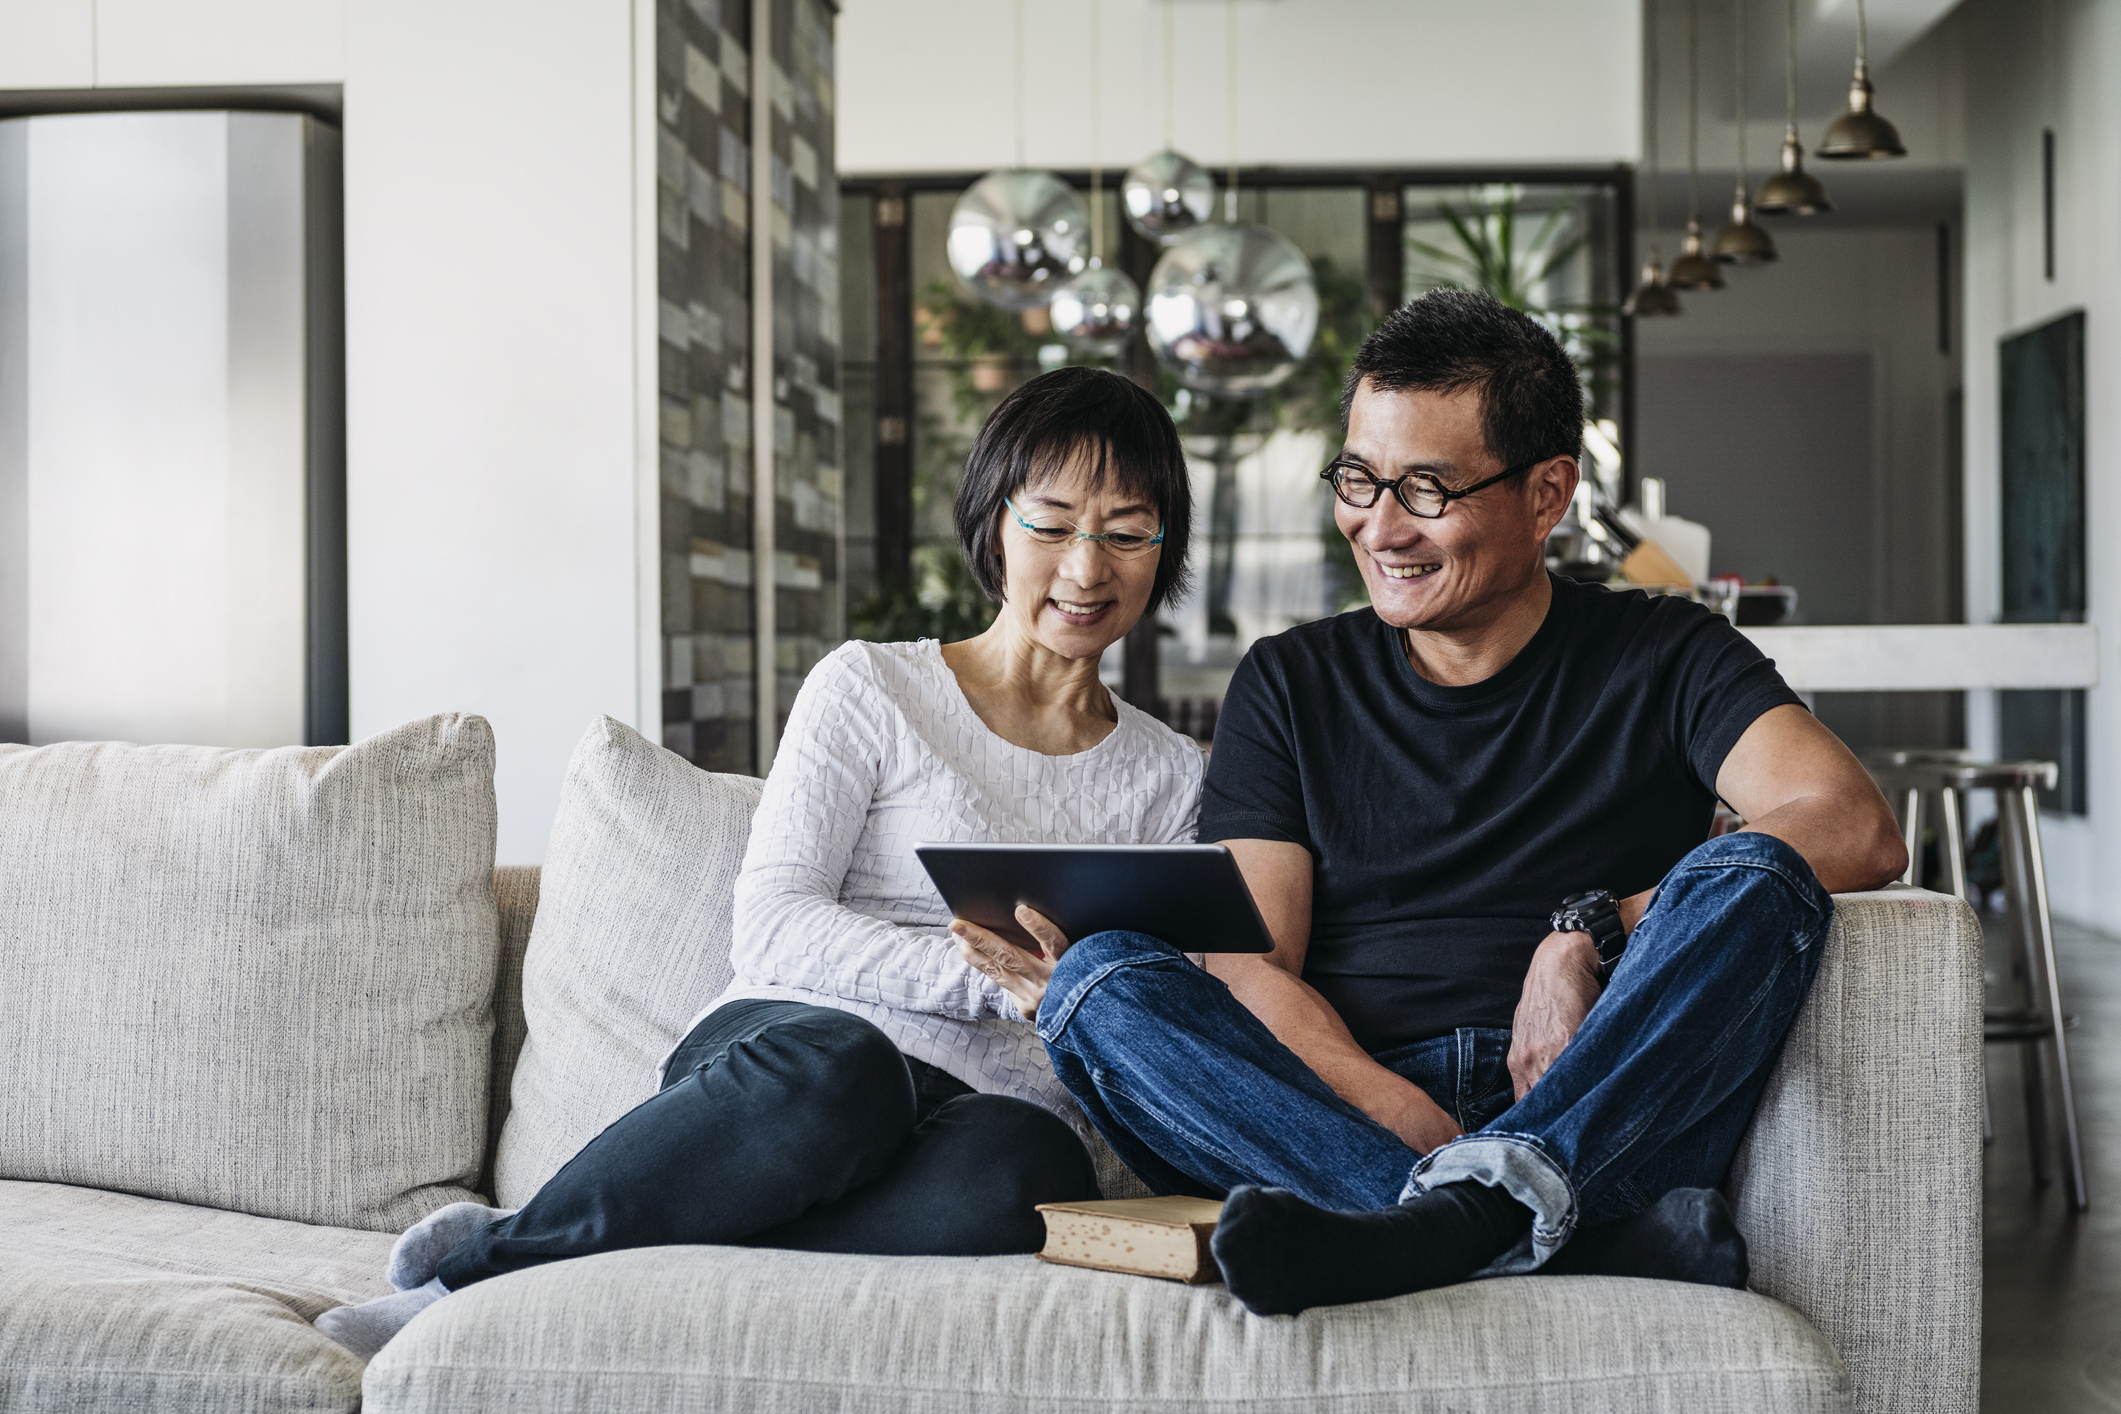 Financial Questions for your Spouse